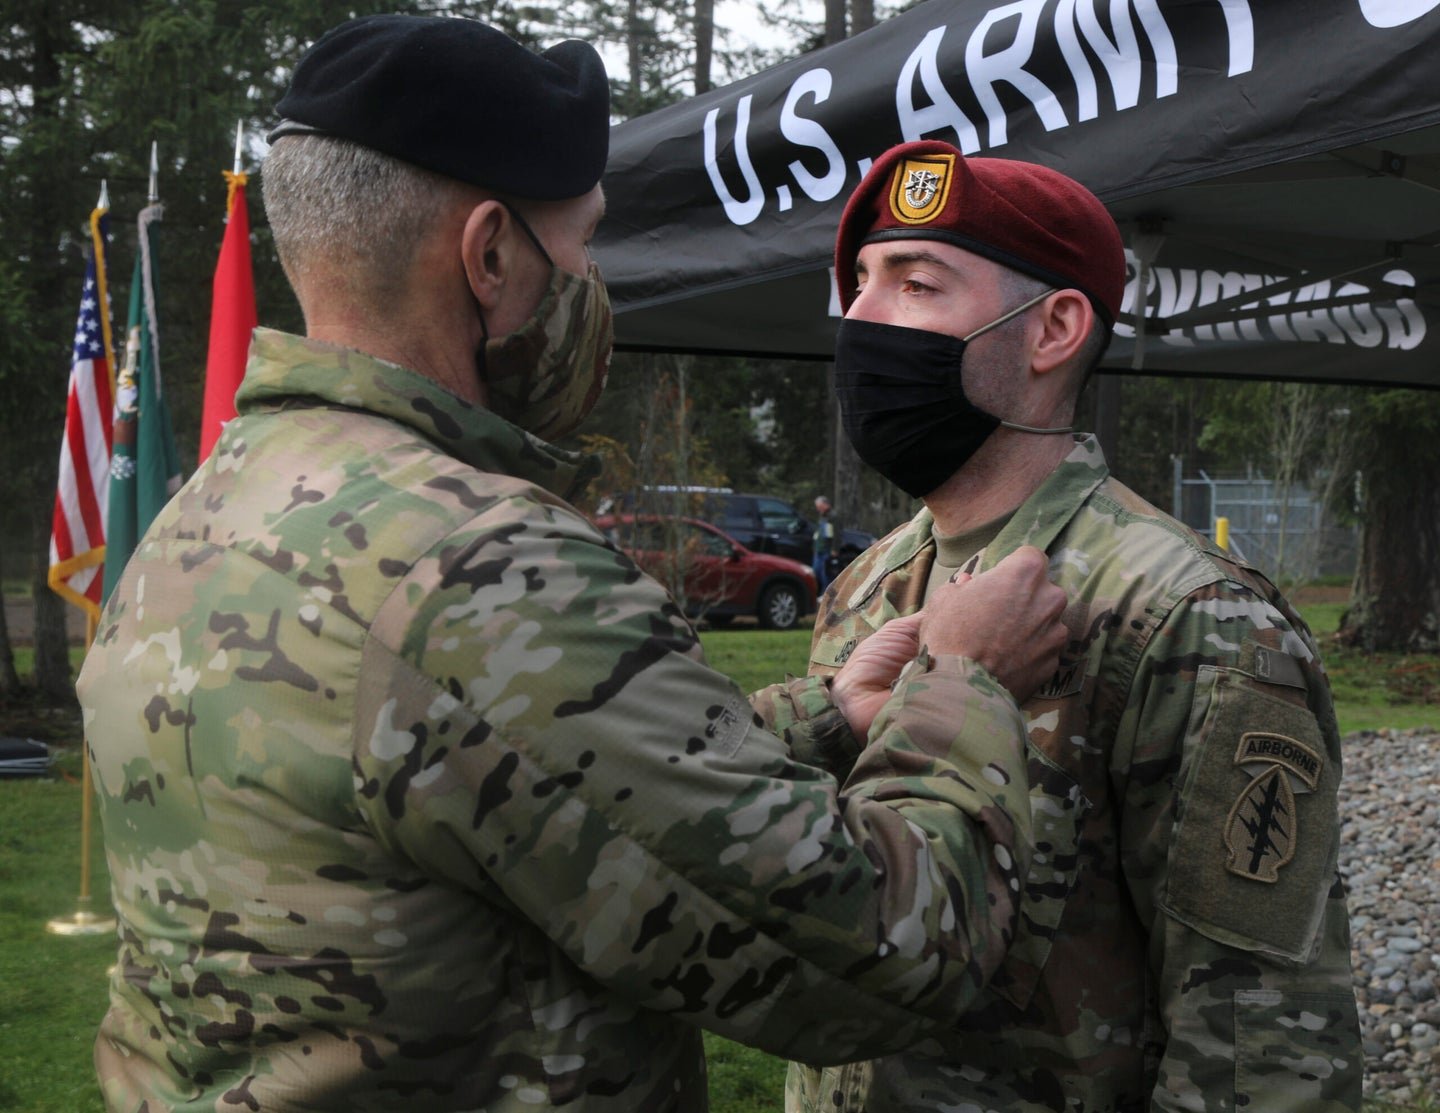 Army sergeant awarded Soldier's Medal for saving a man from burning vehicle